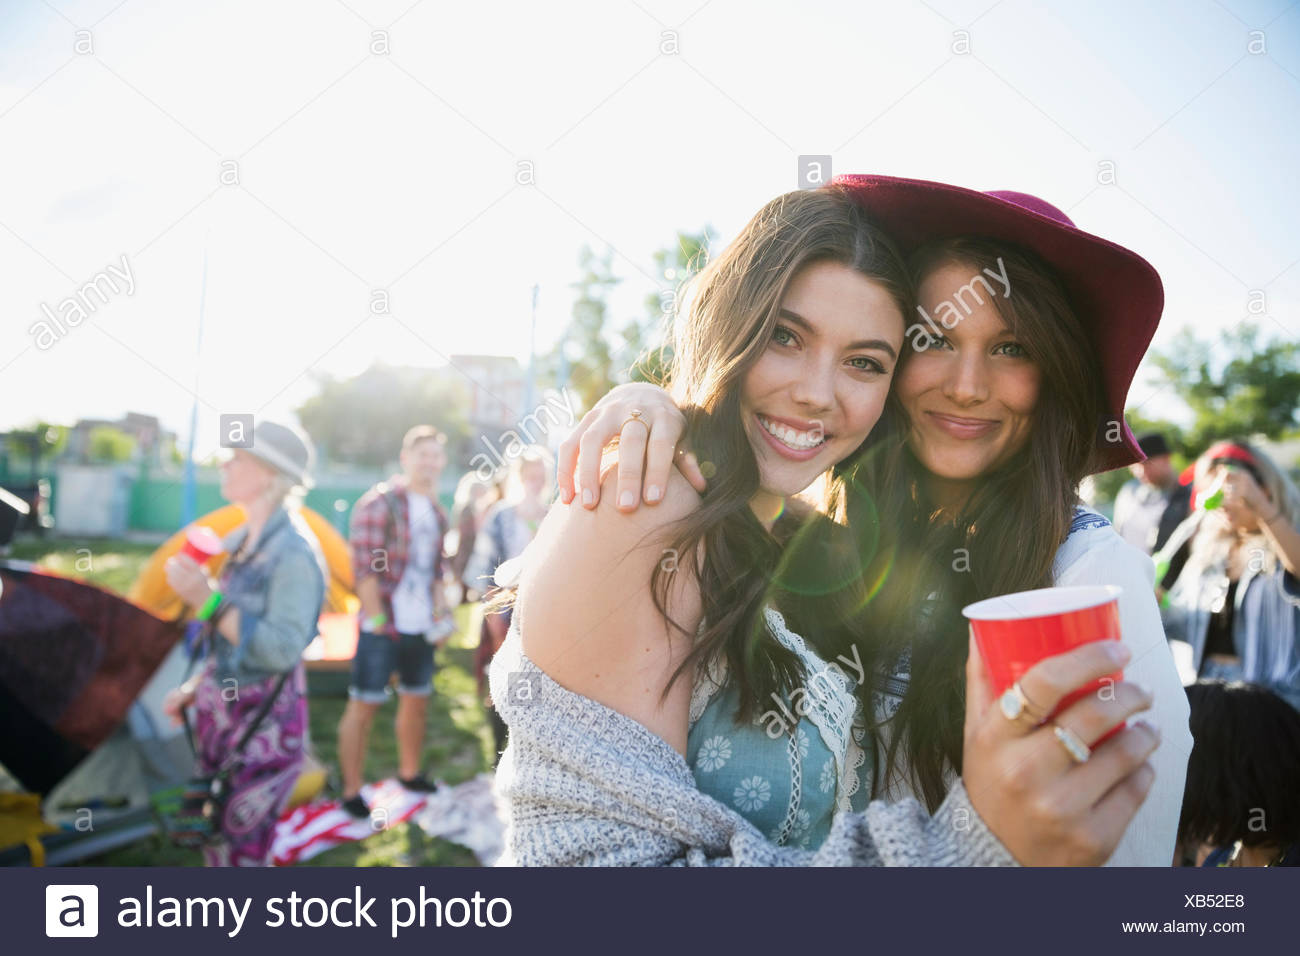 Portrait smiling young women drinking and hanging out at summer music festival campsite - Stock Image